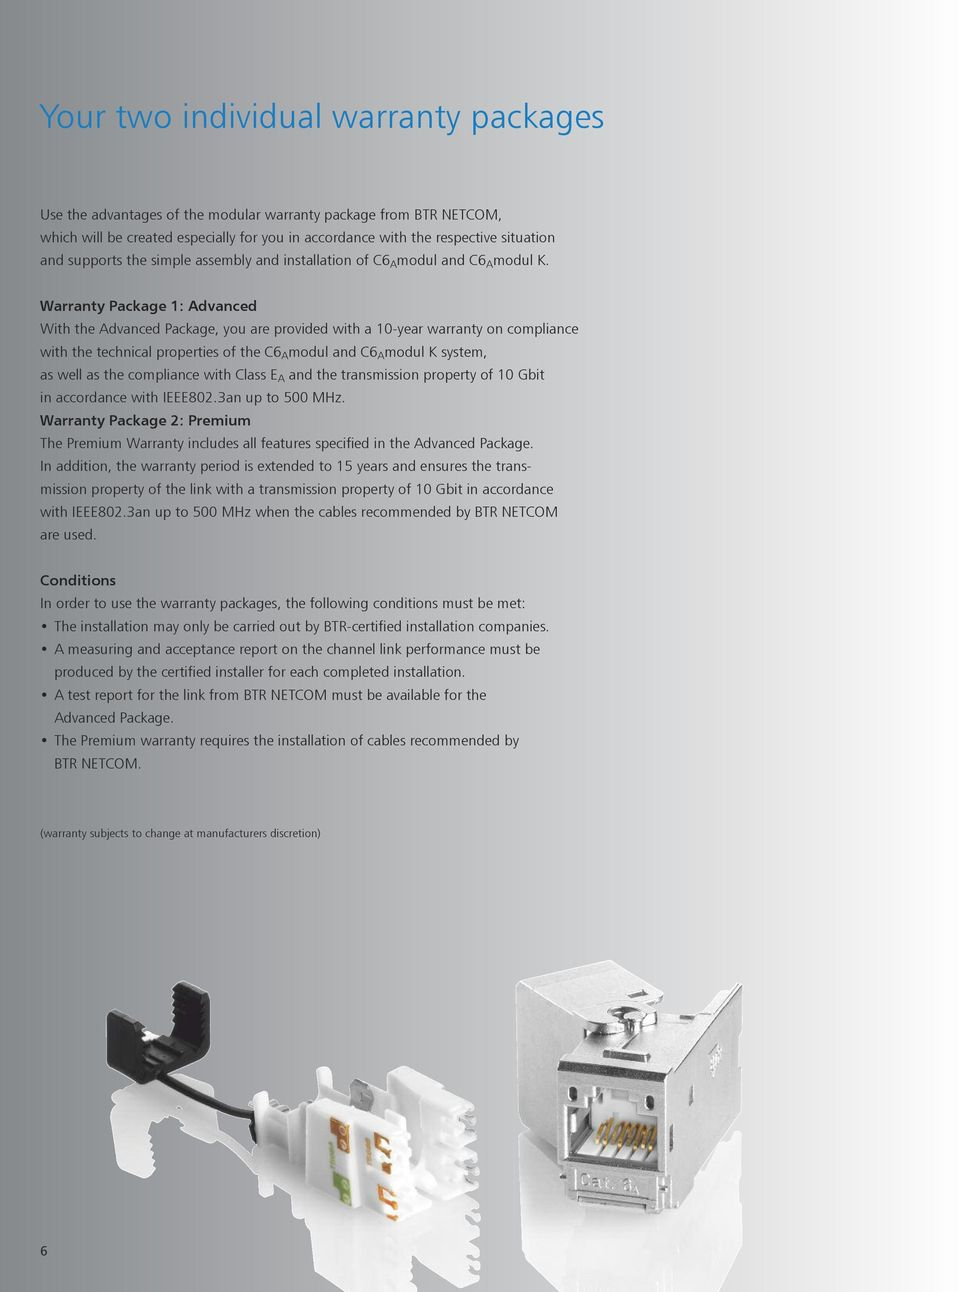 Warranty Package 1: Advanced With the Advanced Package, you are provided with a 10-year warranty on compliance with the technical properties of the C6 A modul and C6 A modul K system, as well as the